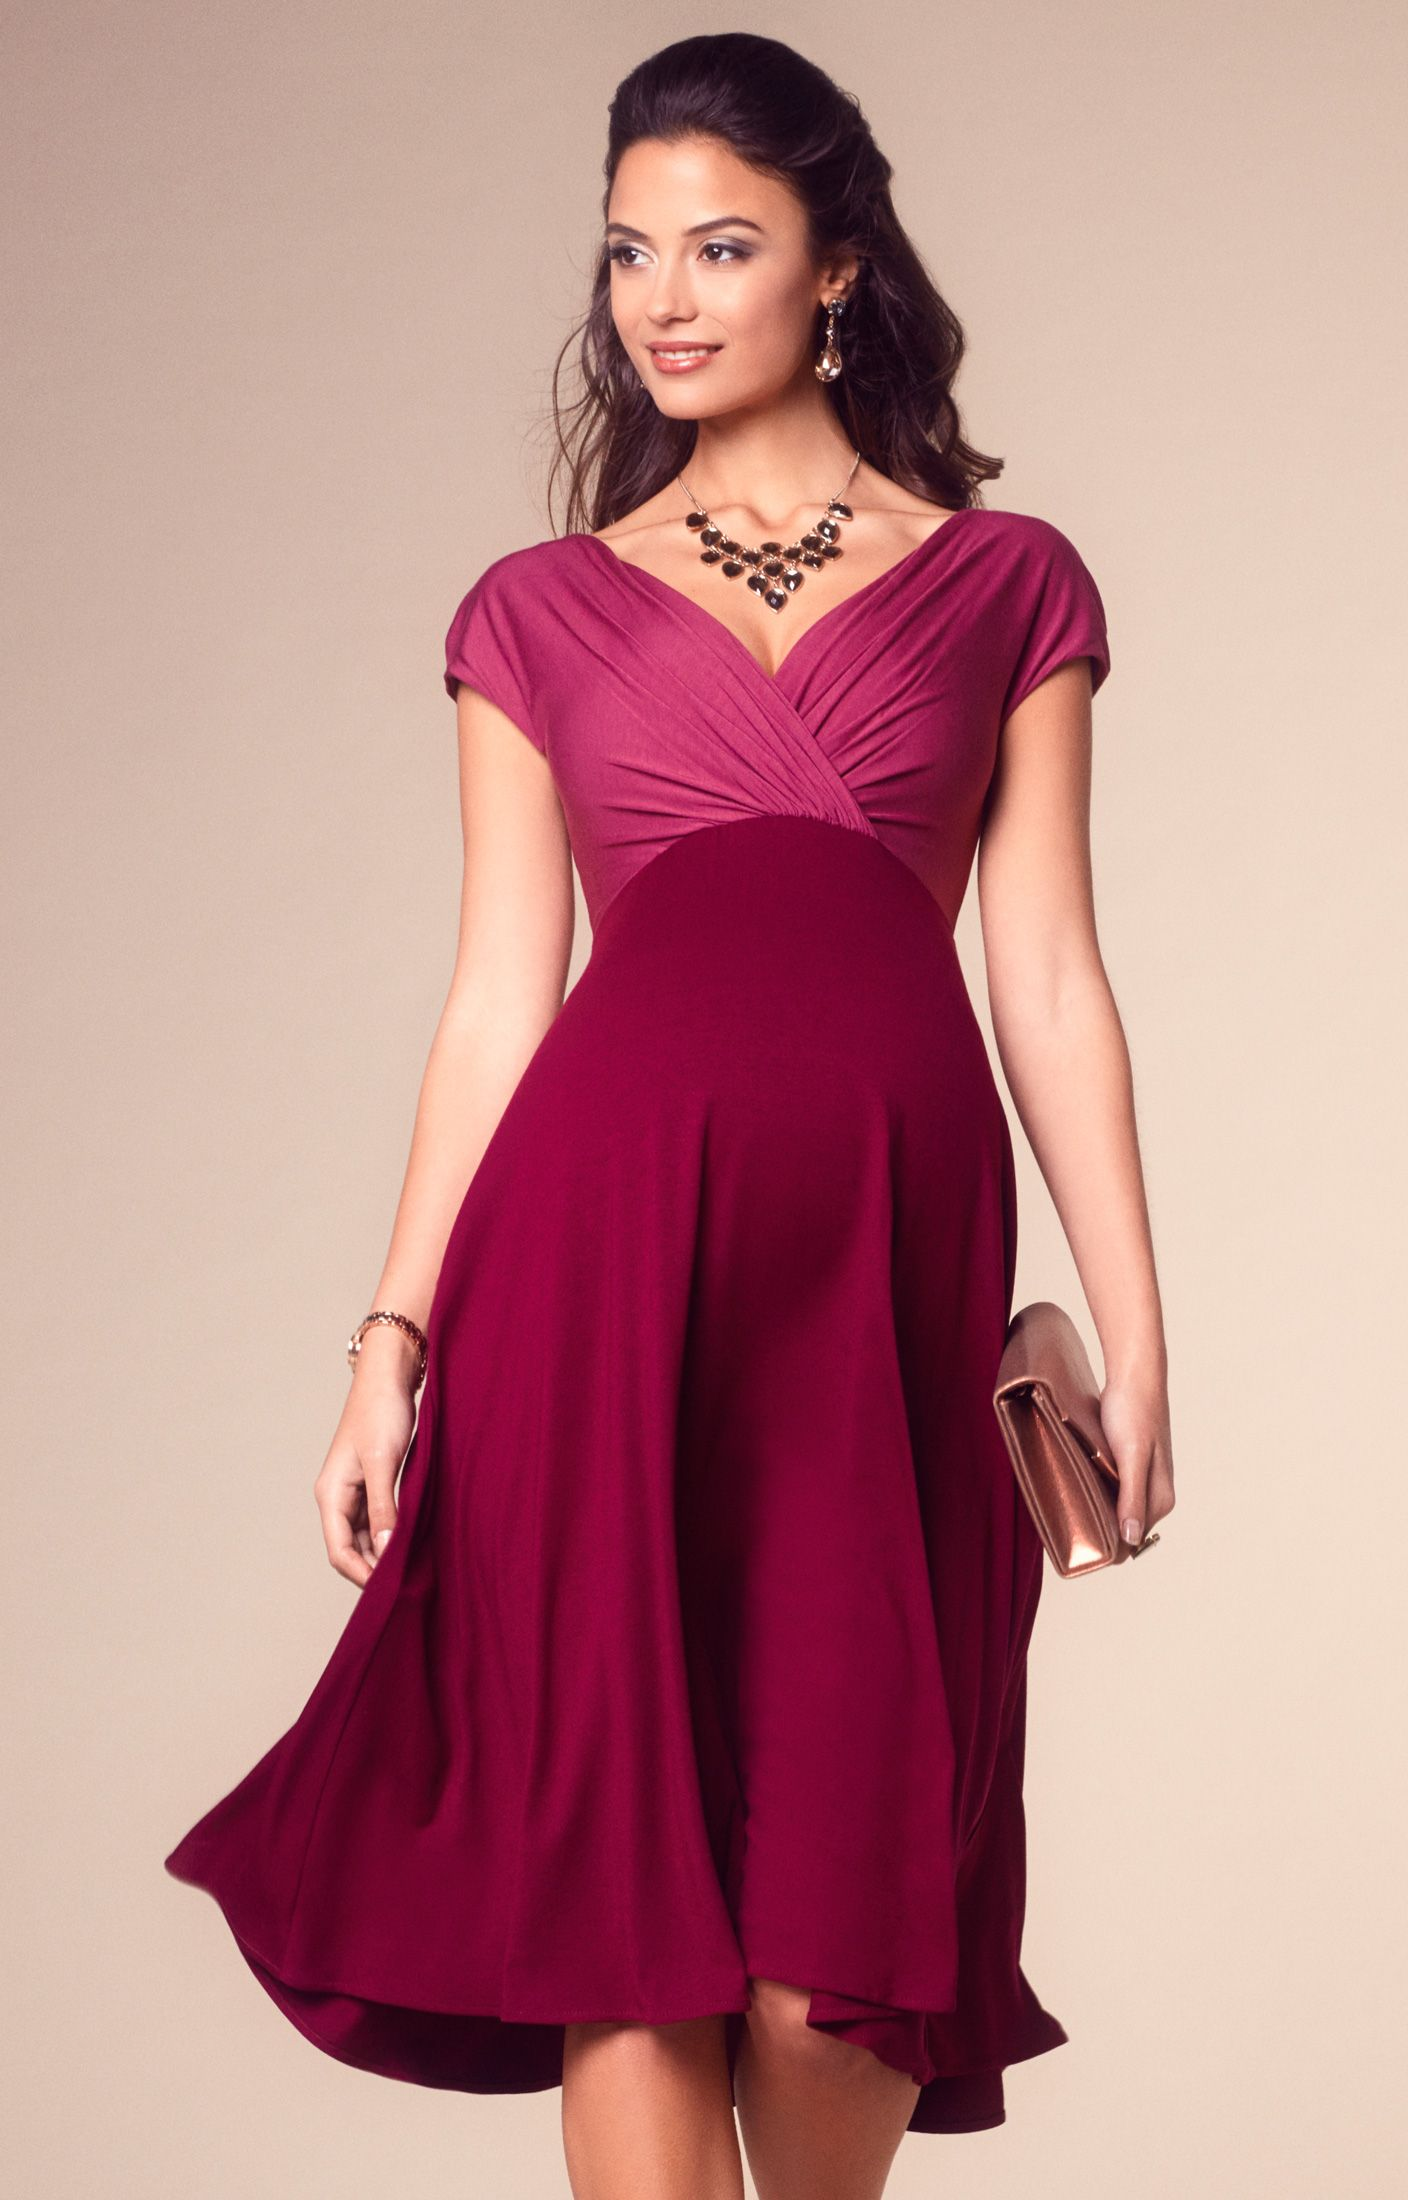 Maternity casual wedding dress  Image result for maternity cocktail dresses  Clothes I Need